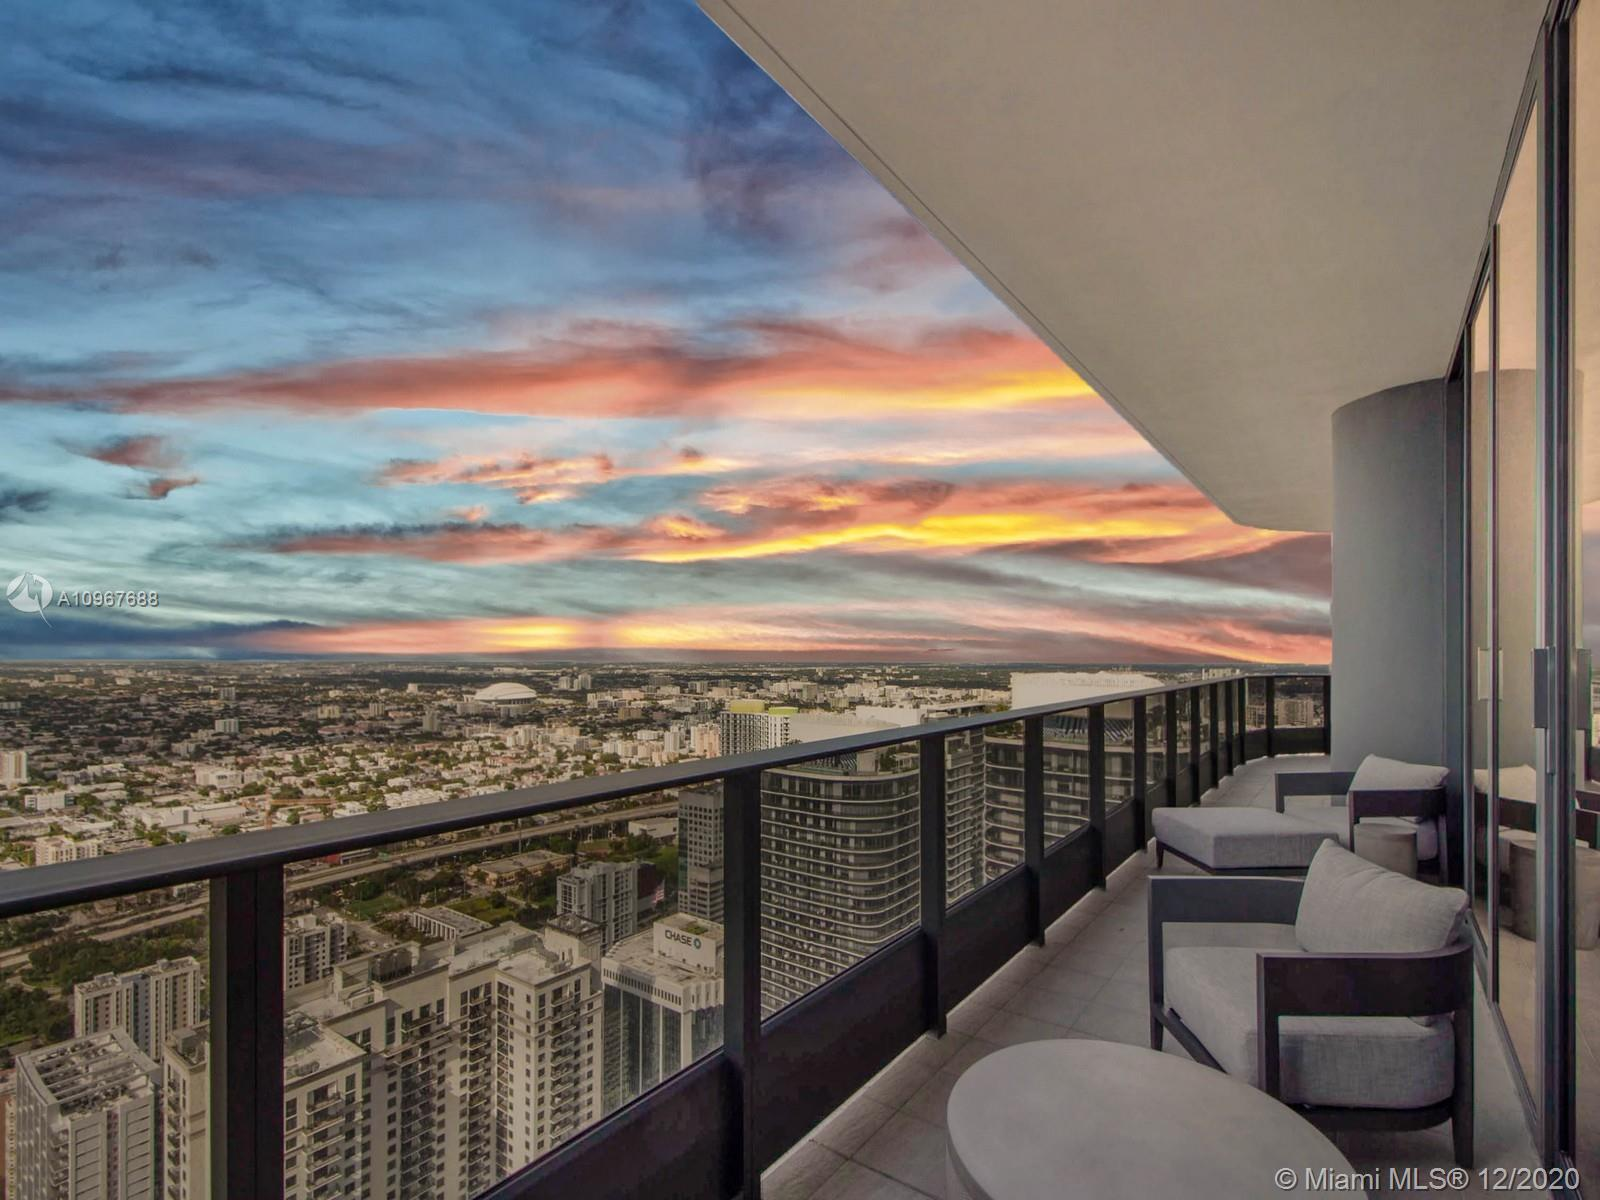 Move in ready residence at Brickell Flatiron offering 3 beds/3.5 baths with 1,800 SF +2  assigned parking spaces! Enjoy the expansive wrap around balconies with with sprawling skyline city views. Meticulously designed to perfection this unit is sold furnished and move in ready. Brickell Flatiron's amenities include the 64th floor rooftop pool with a spa, and 6,300-square-foot gym with a Pilates, yoga, aerobics studio, and a juice bar. The building also includes a lap pool and children's pool on the 18th floor, a movie theater, billiards and cigar room, wine cellar, and electric car charging stations. In the heart of Brickell this gorgeous building is the ultimate address in town. Owner motivated and Easy to show!